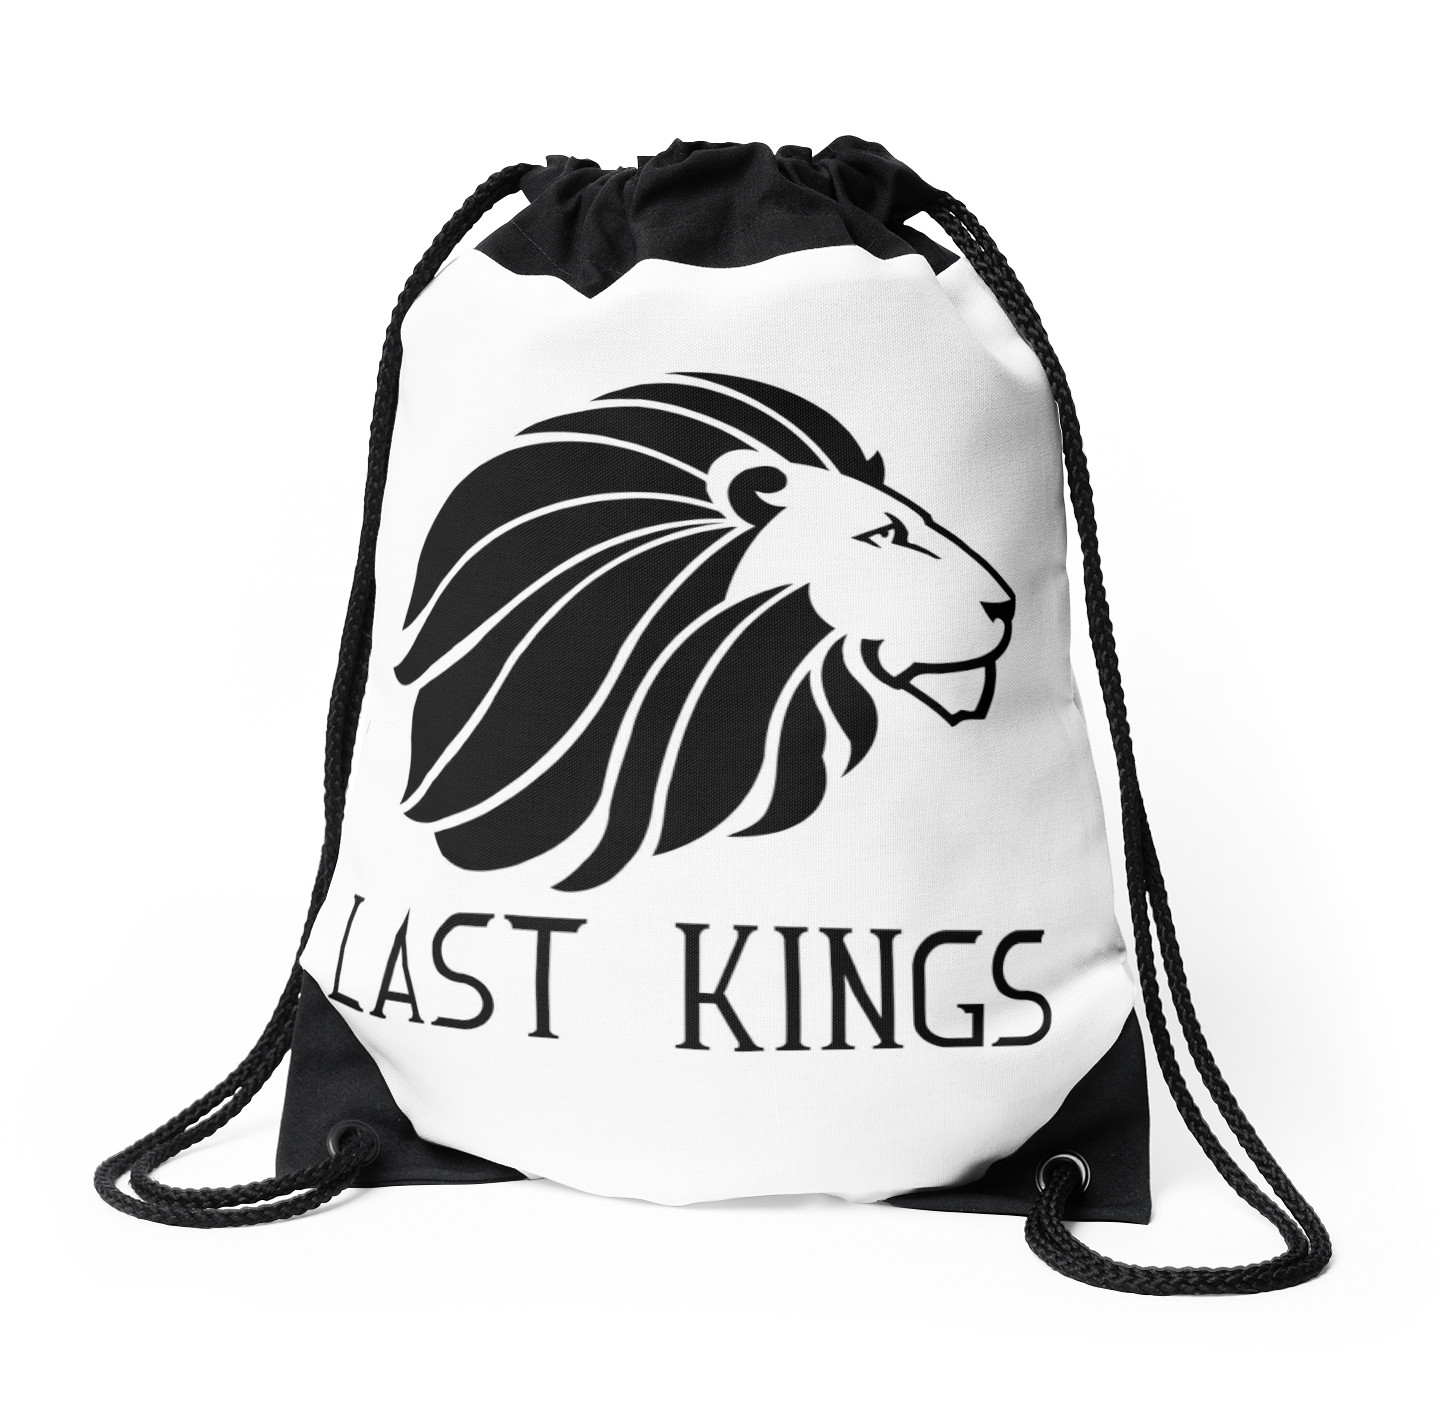 1435x1404 Last Kings Drawstring Bags By Thelaw61 Redbubble